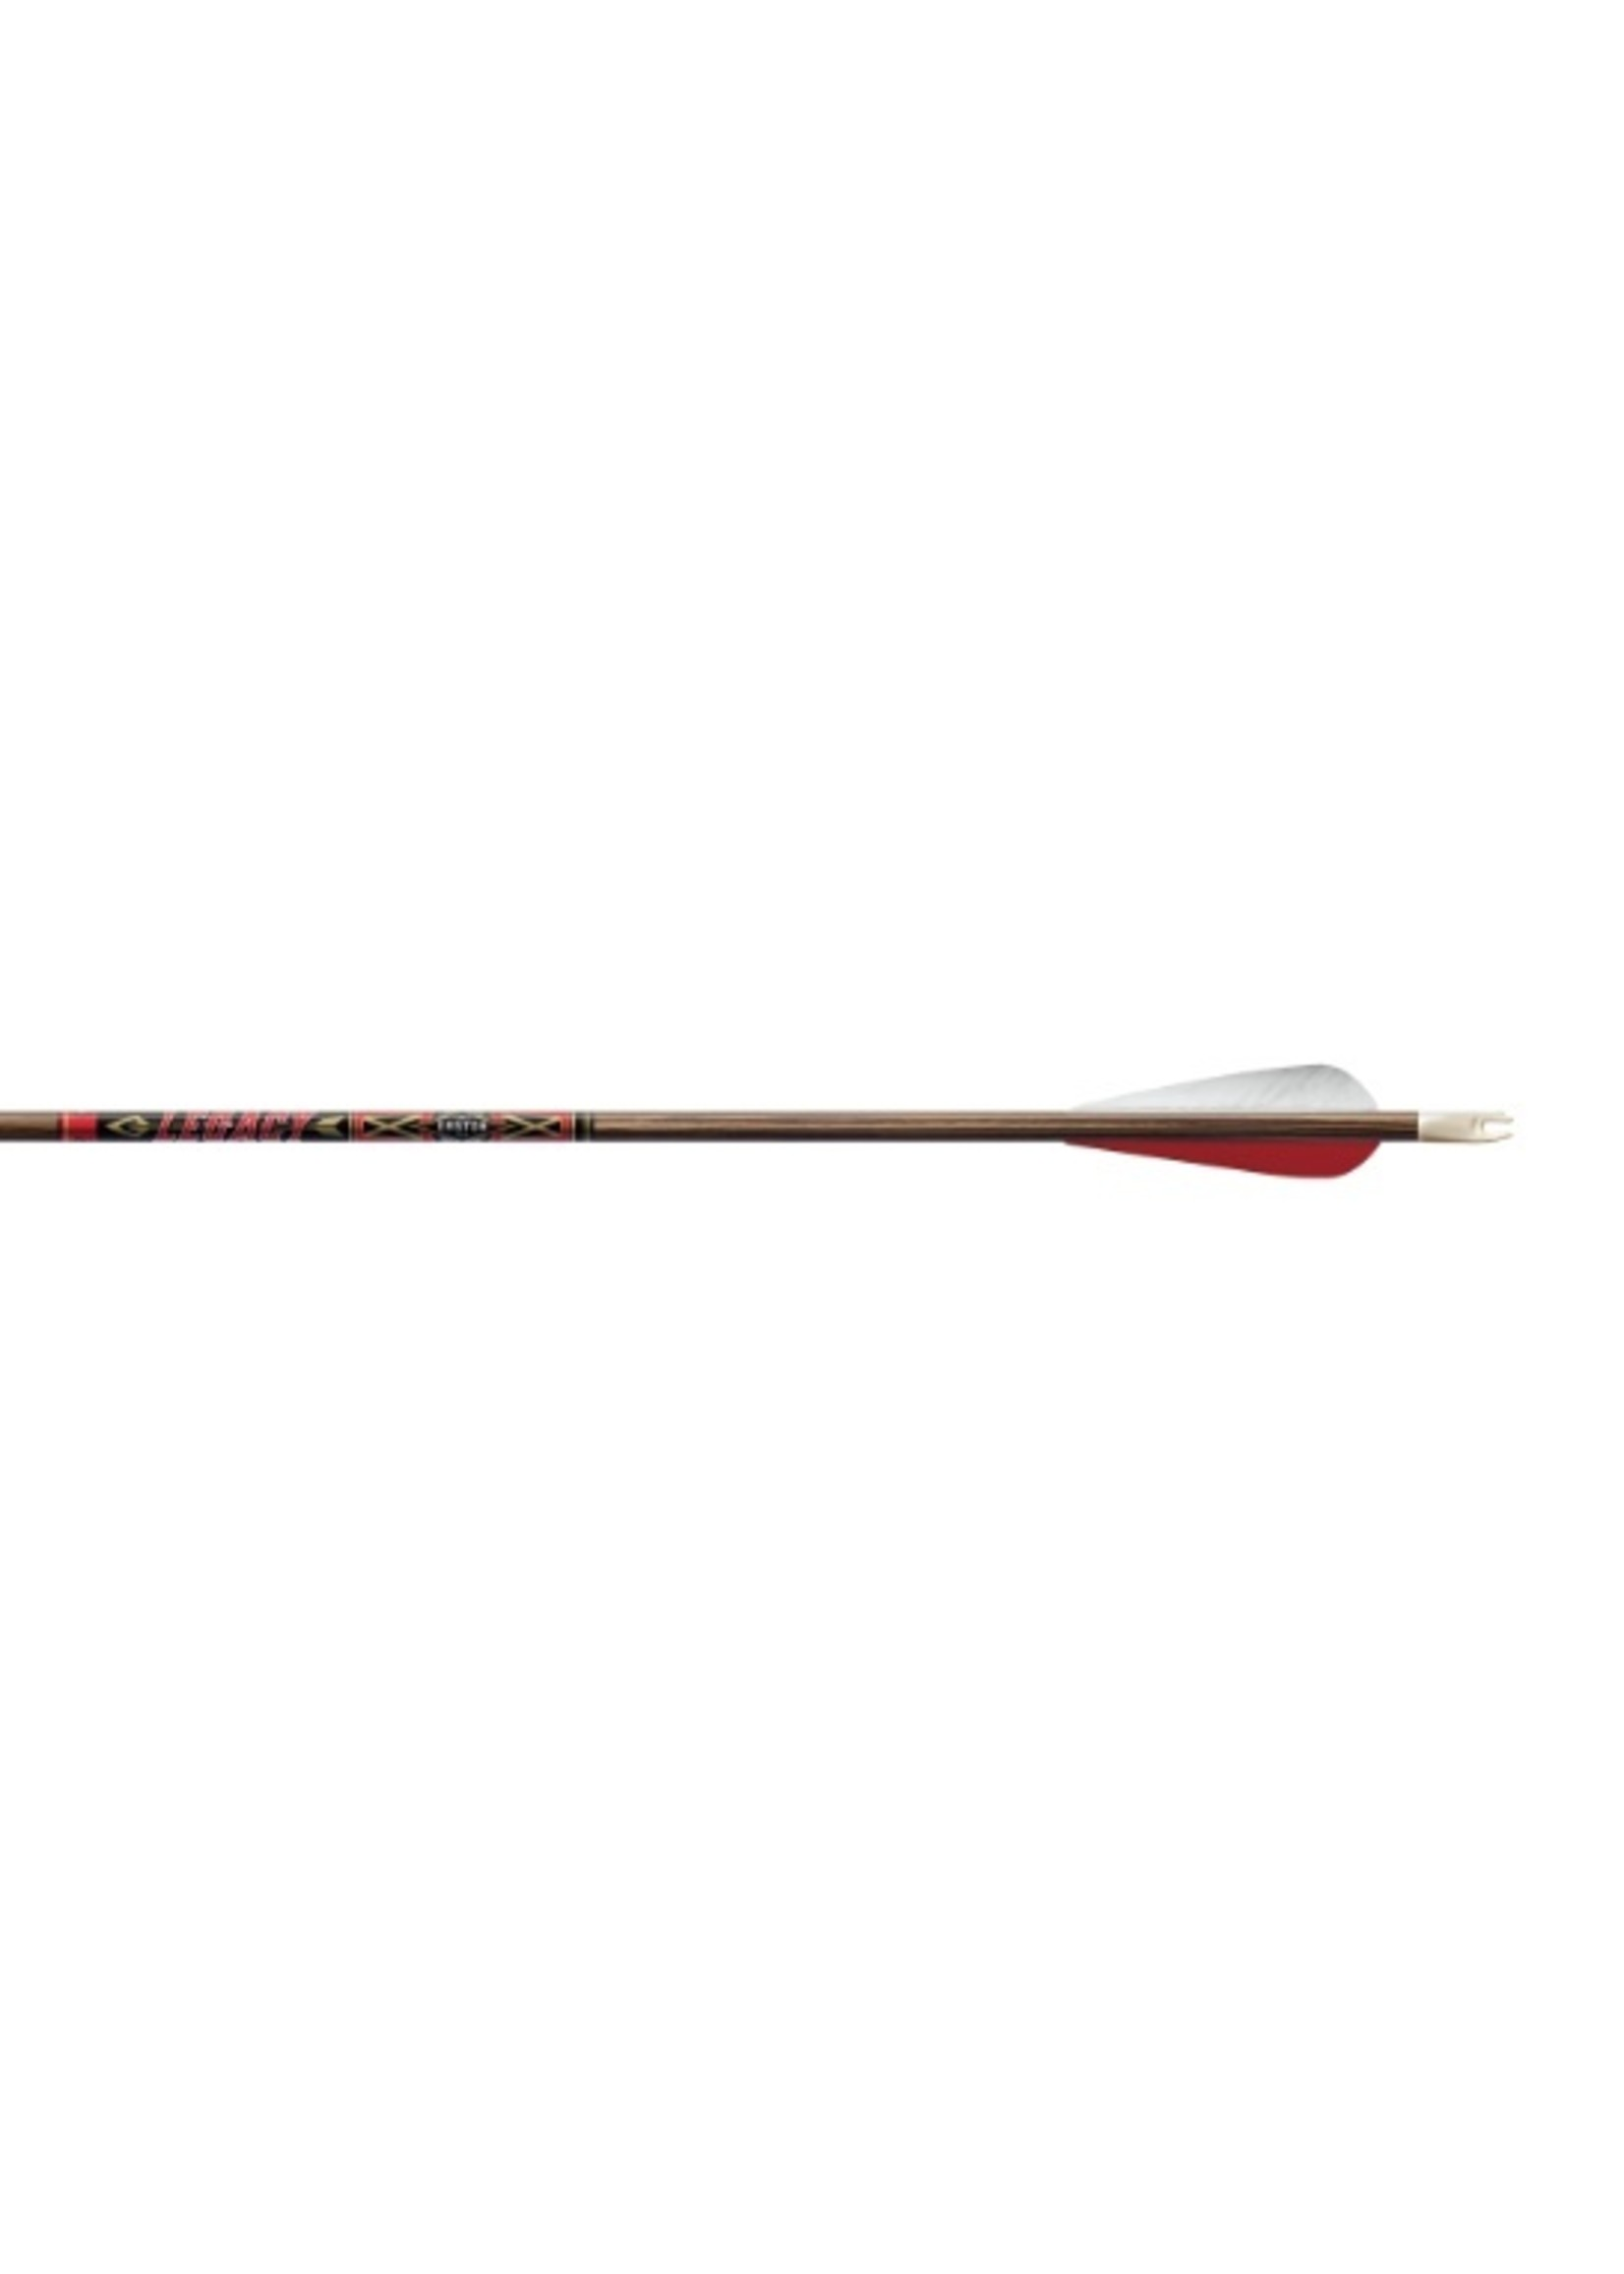 Easton Archery Easton Legacy Arrows Fletched with Feathers